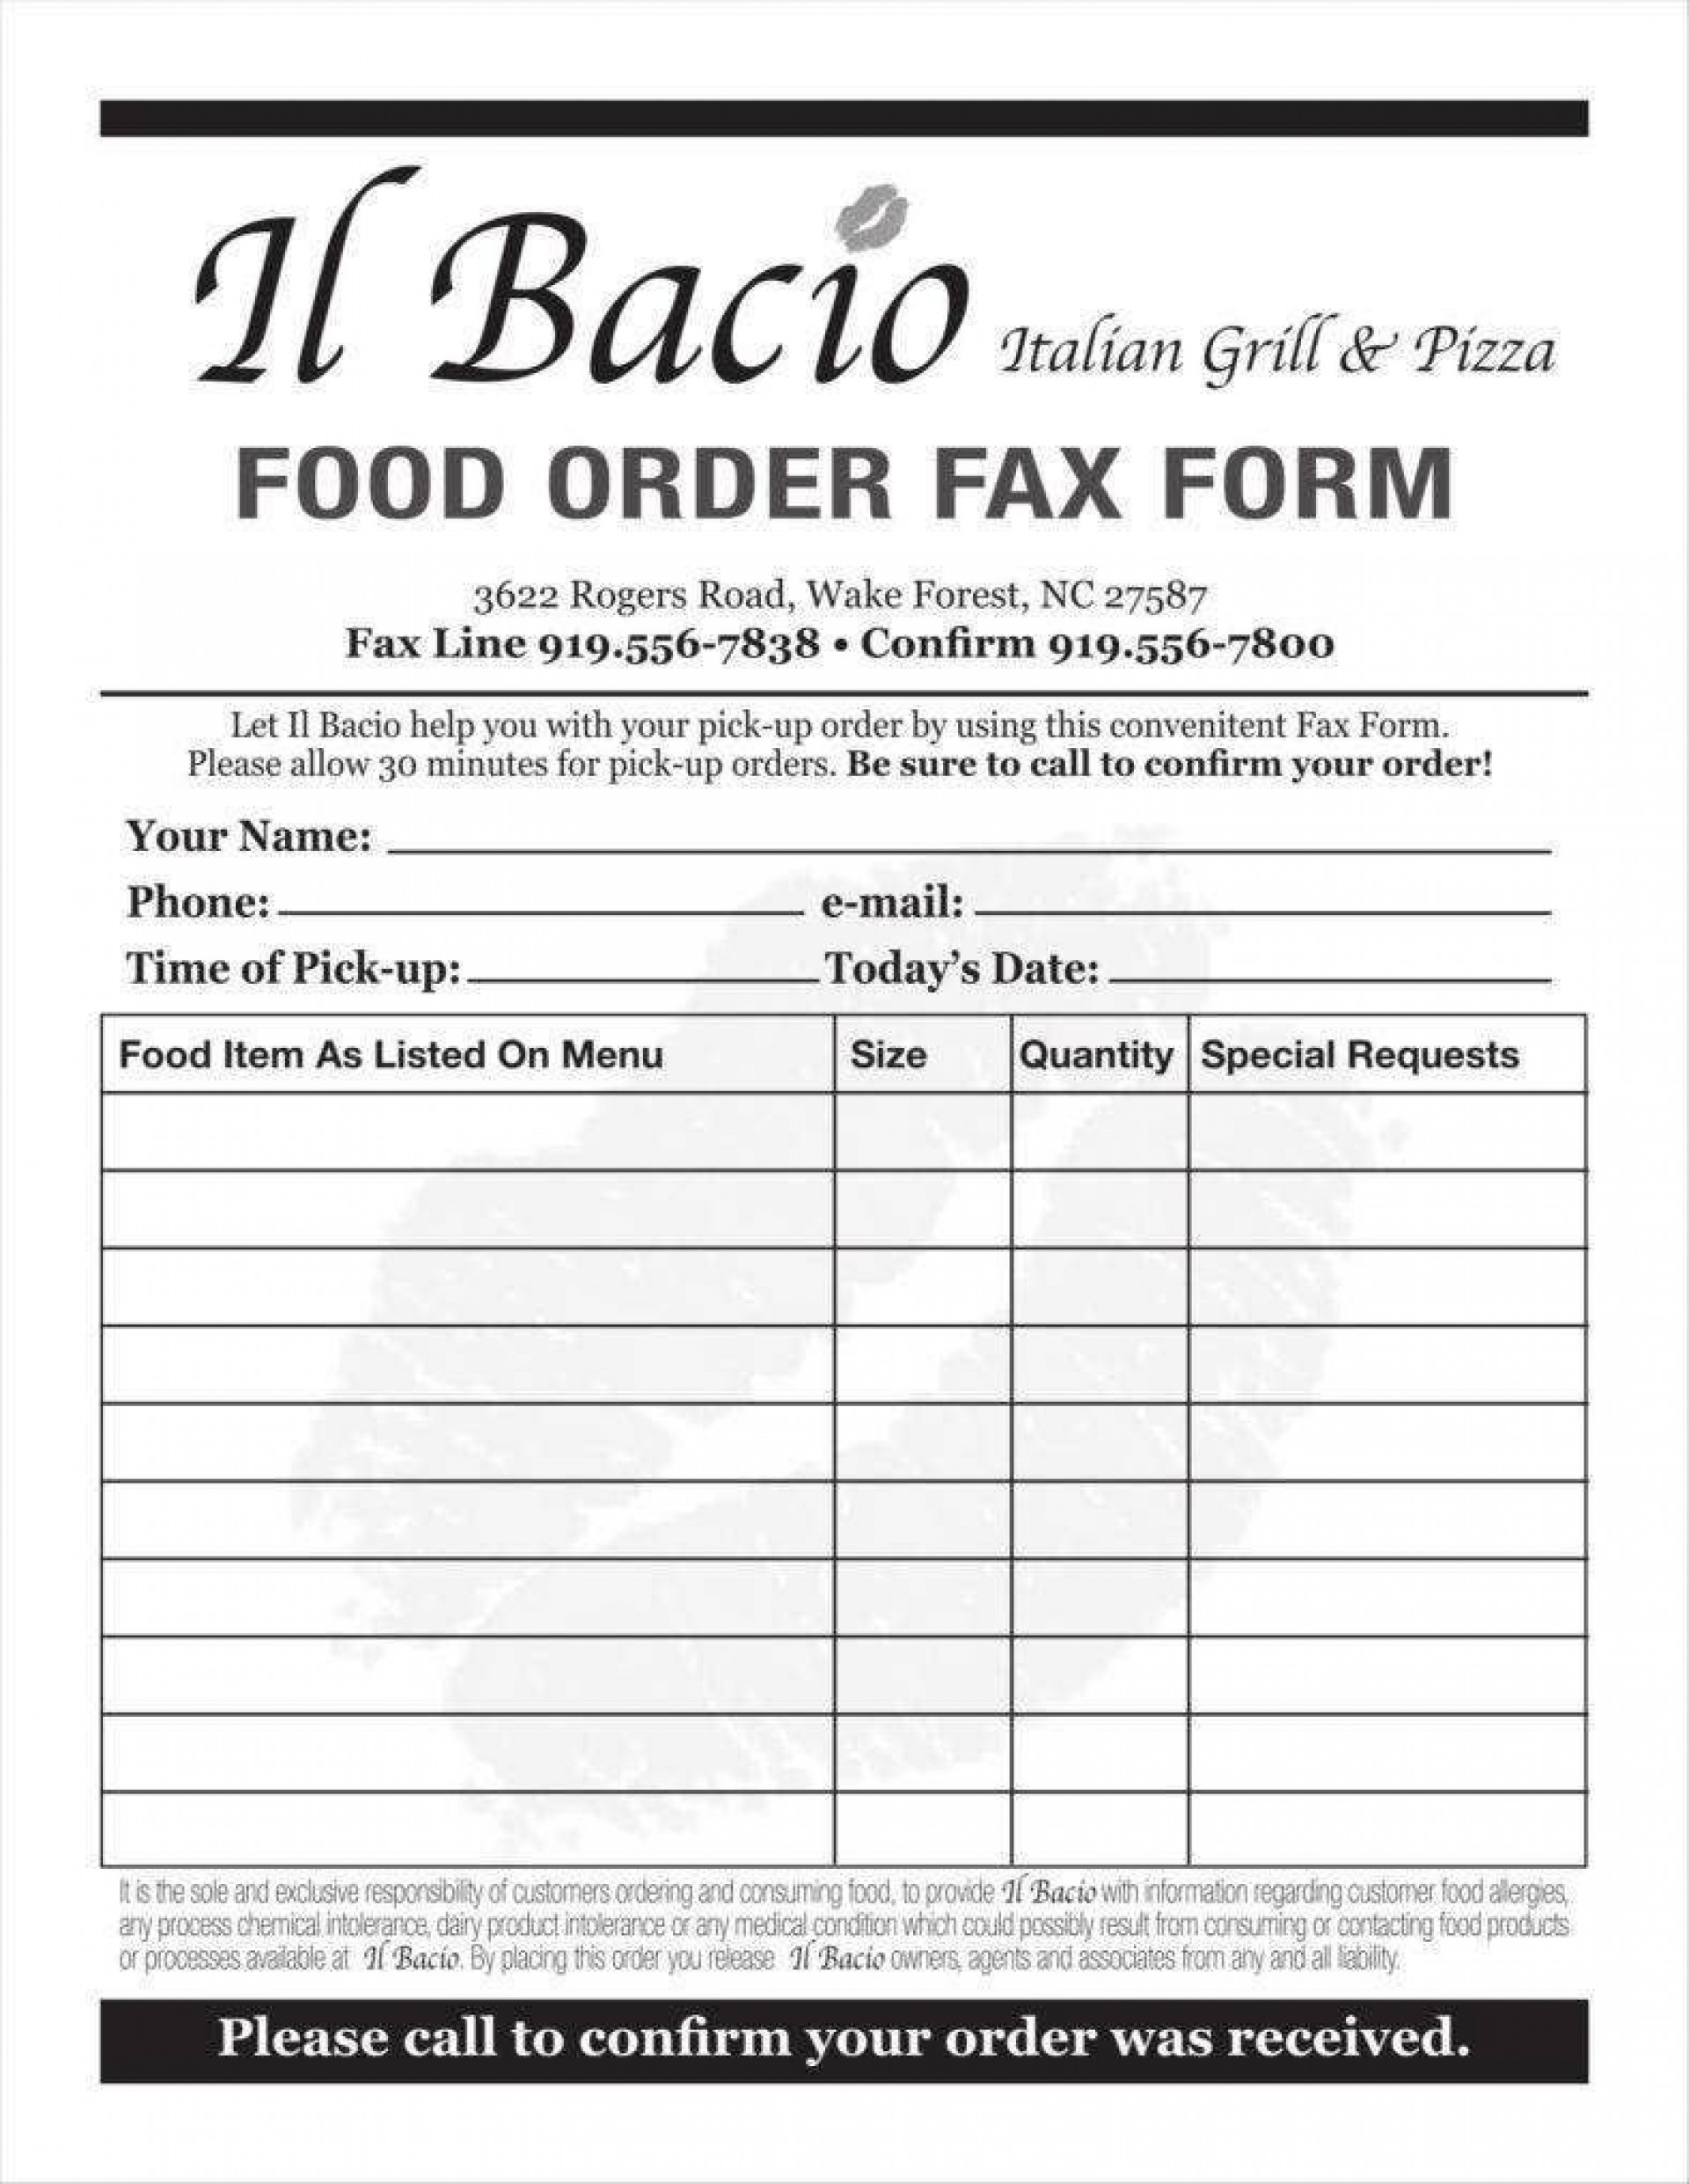 006 Phenomenal Food Order Form Template Word Inspiration 1920